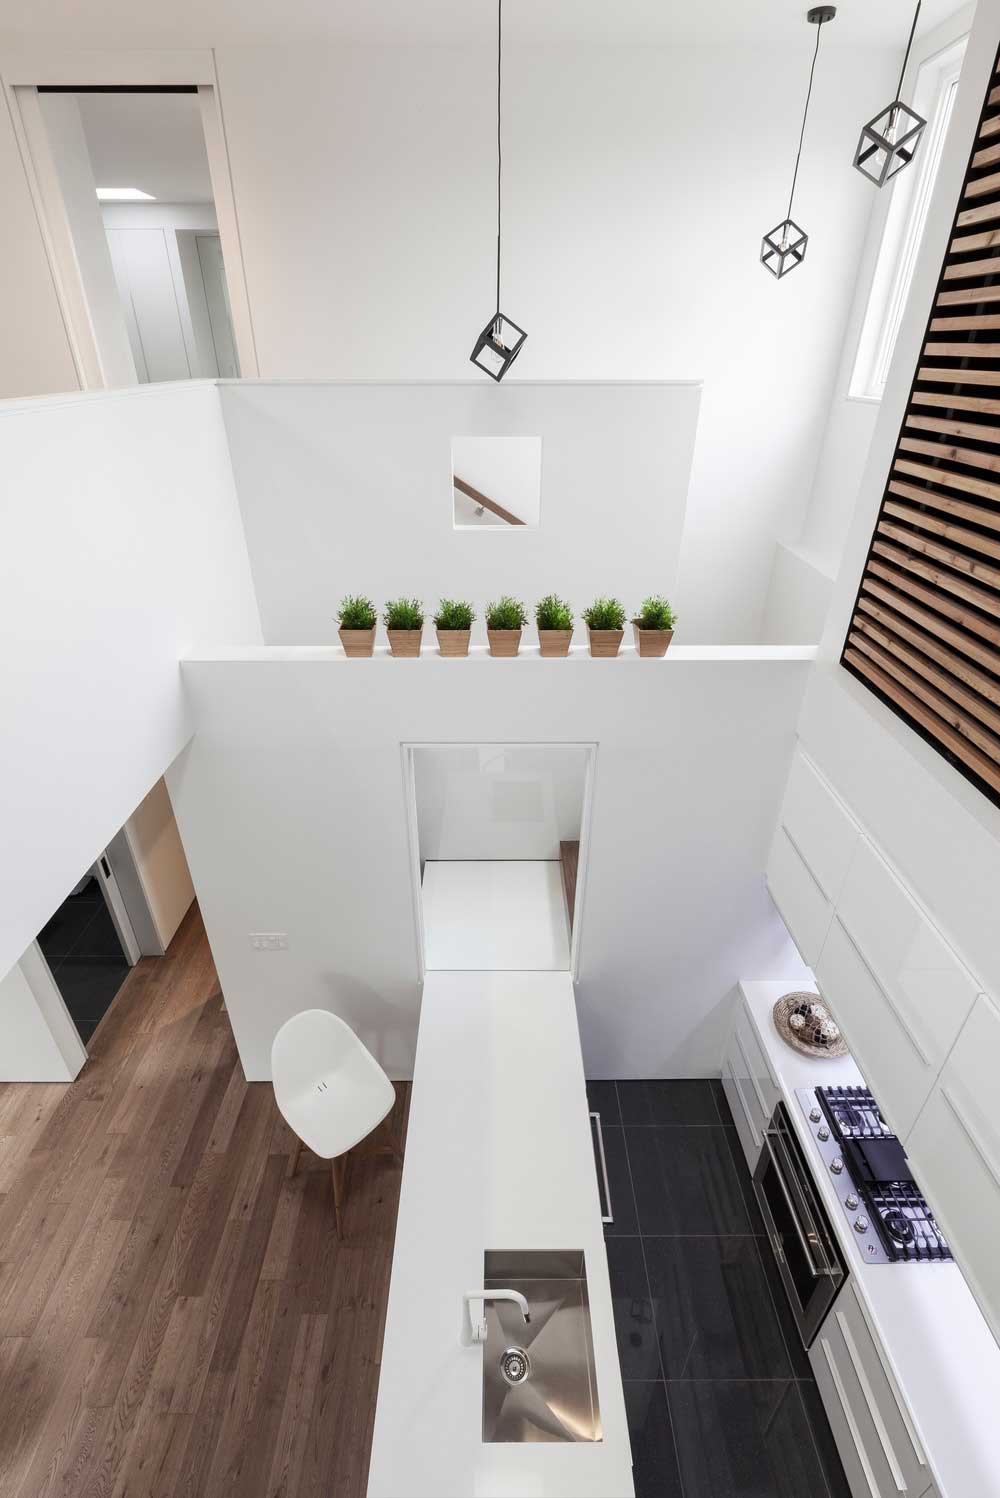 kitchen design top view - Flipped House